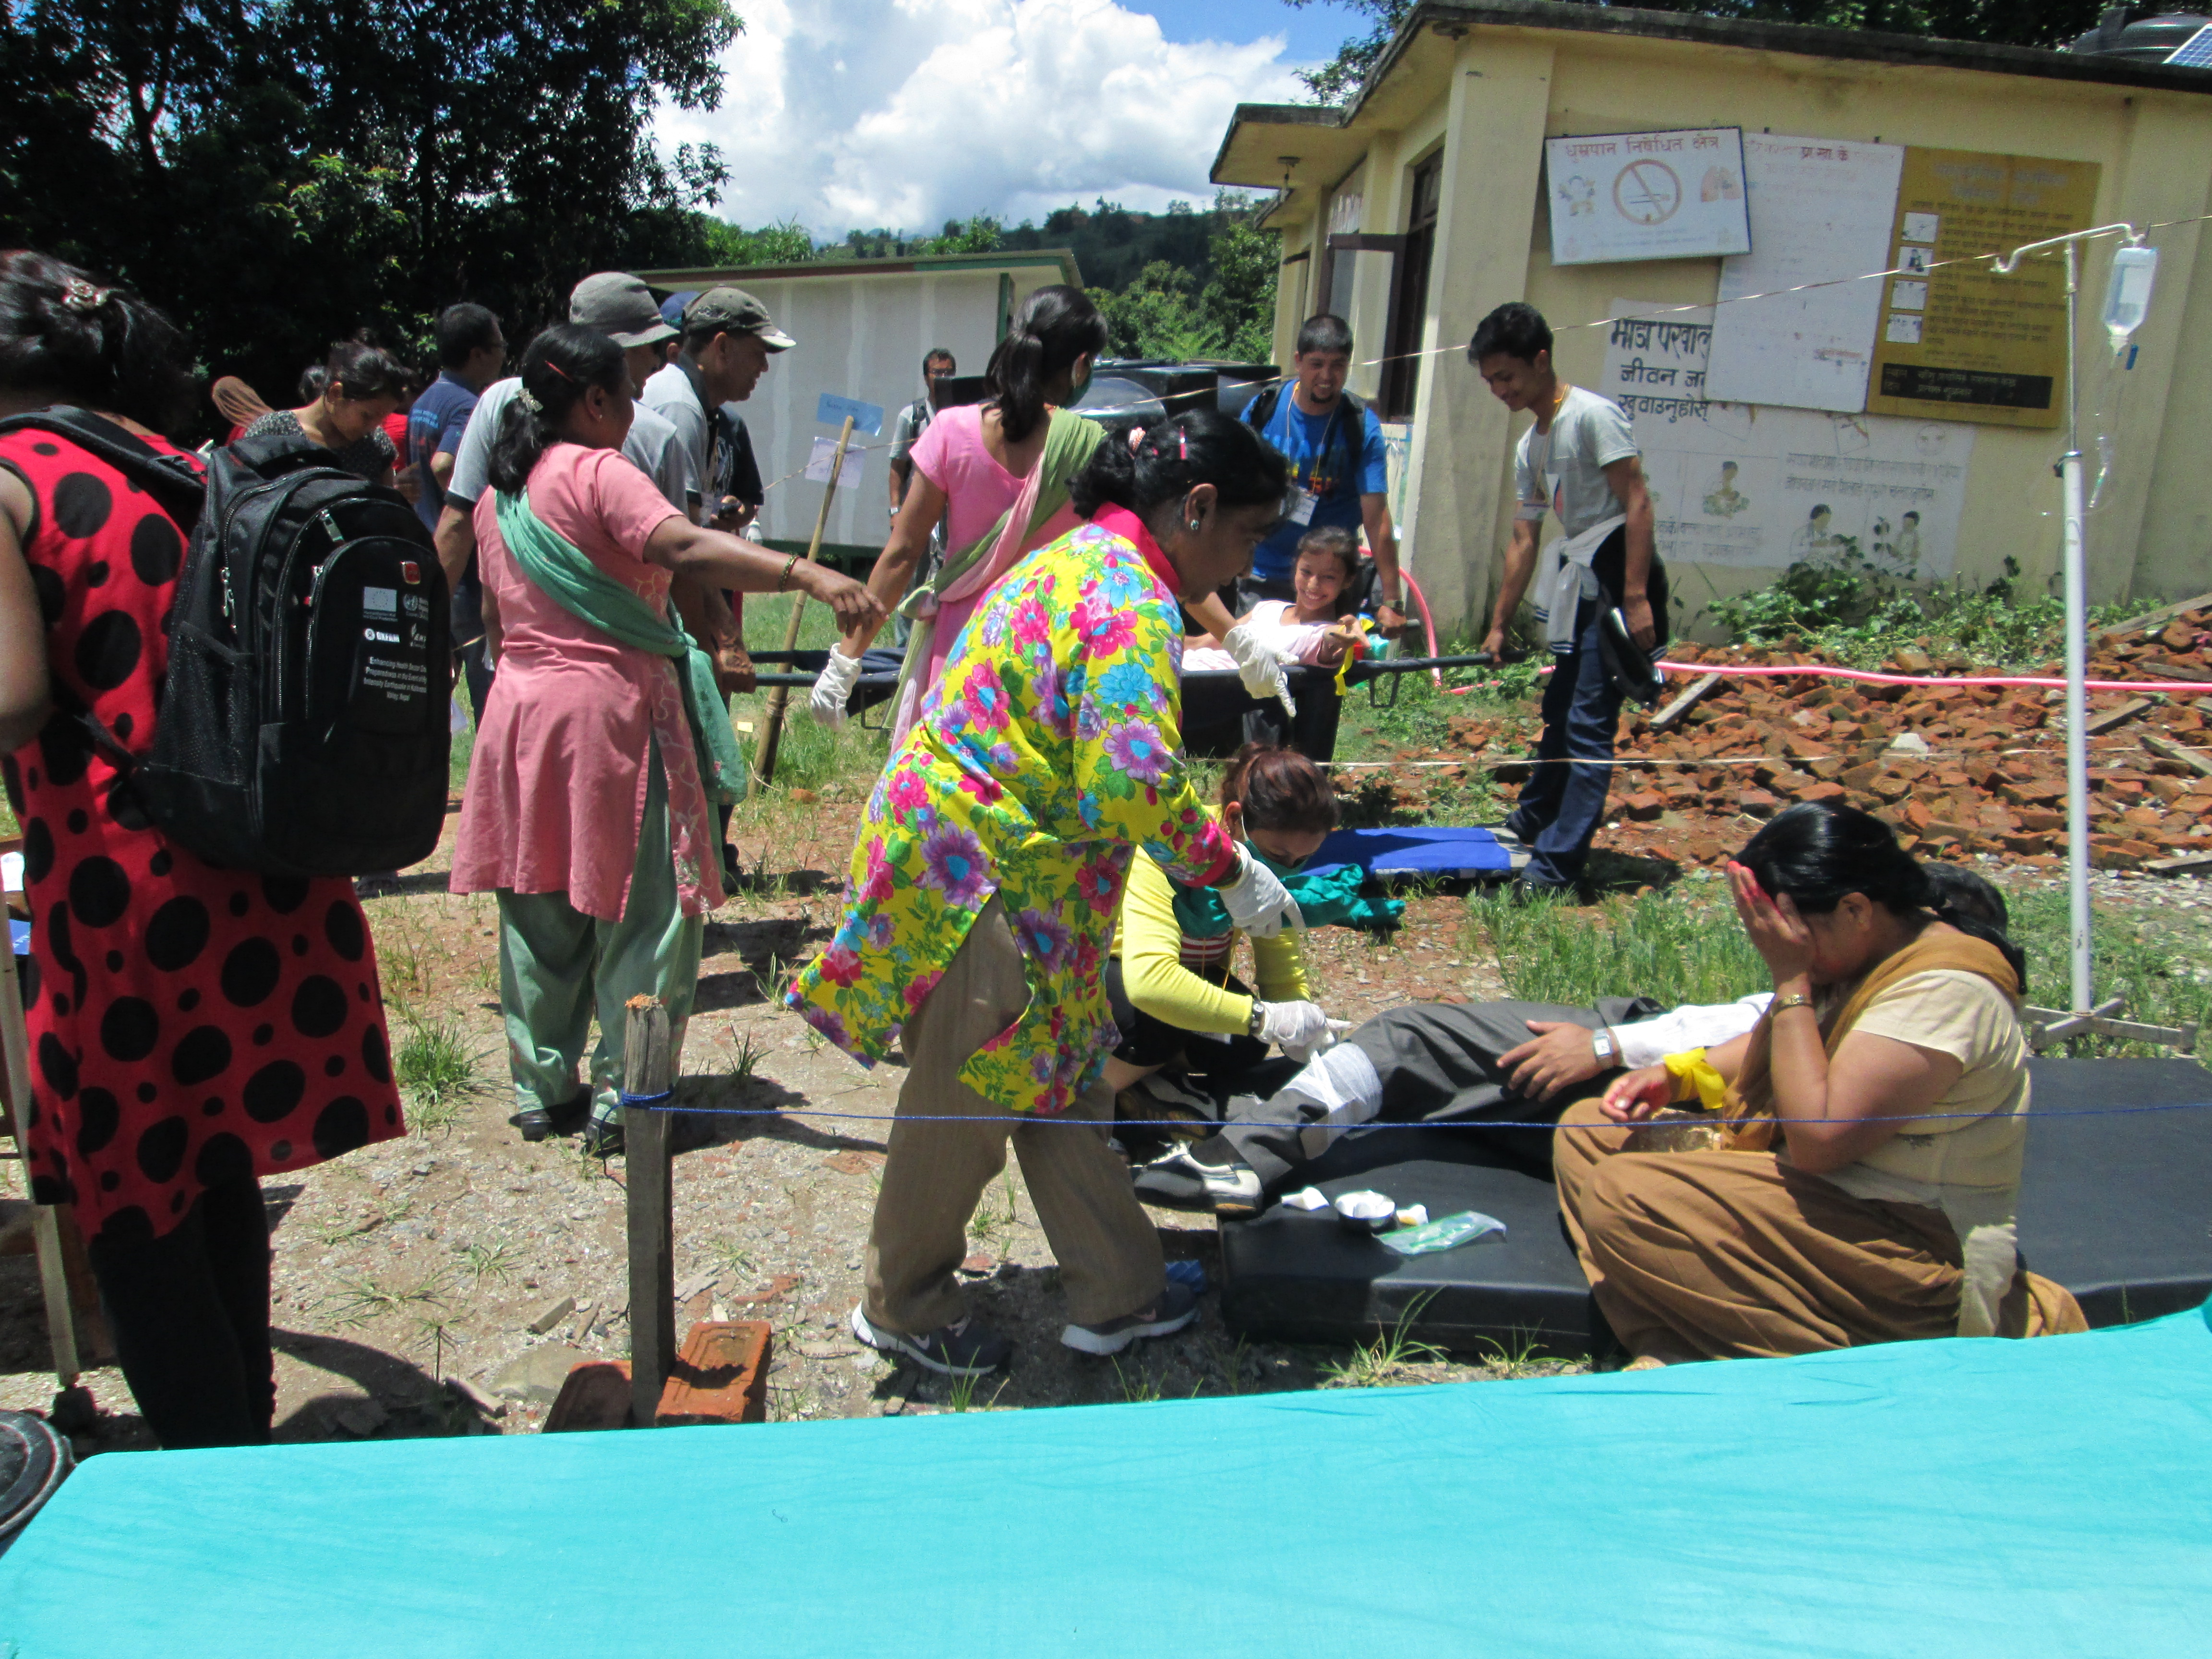 An hour after the earthquake, injured are treated effectively at the PHC - Credit: DRR team/Oxfam